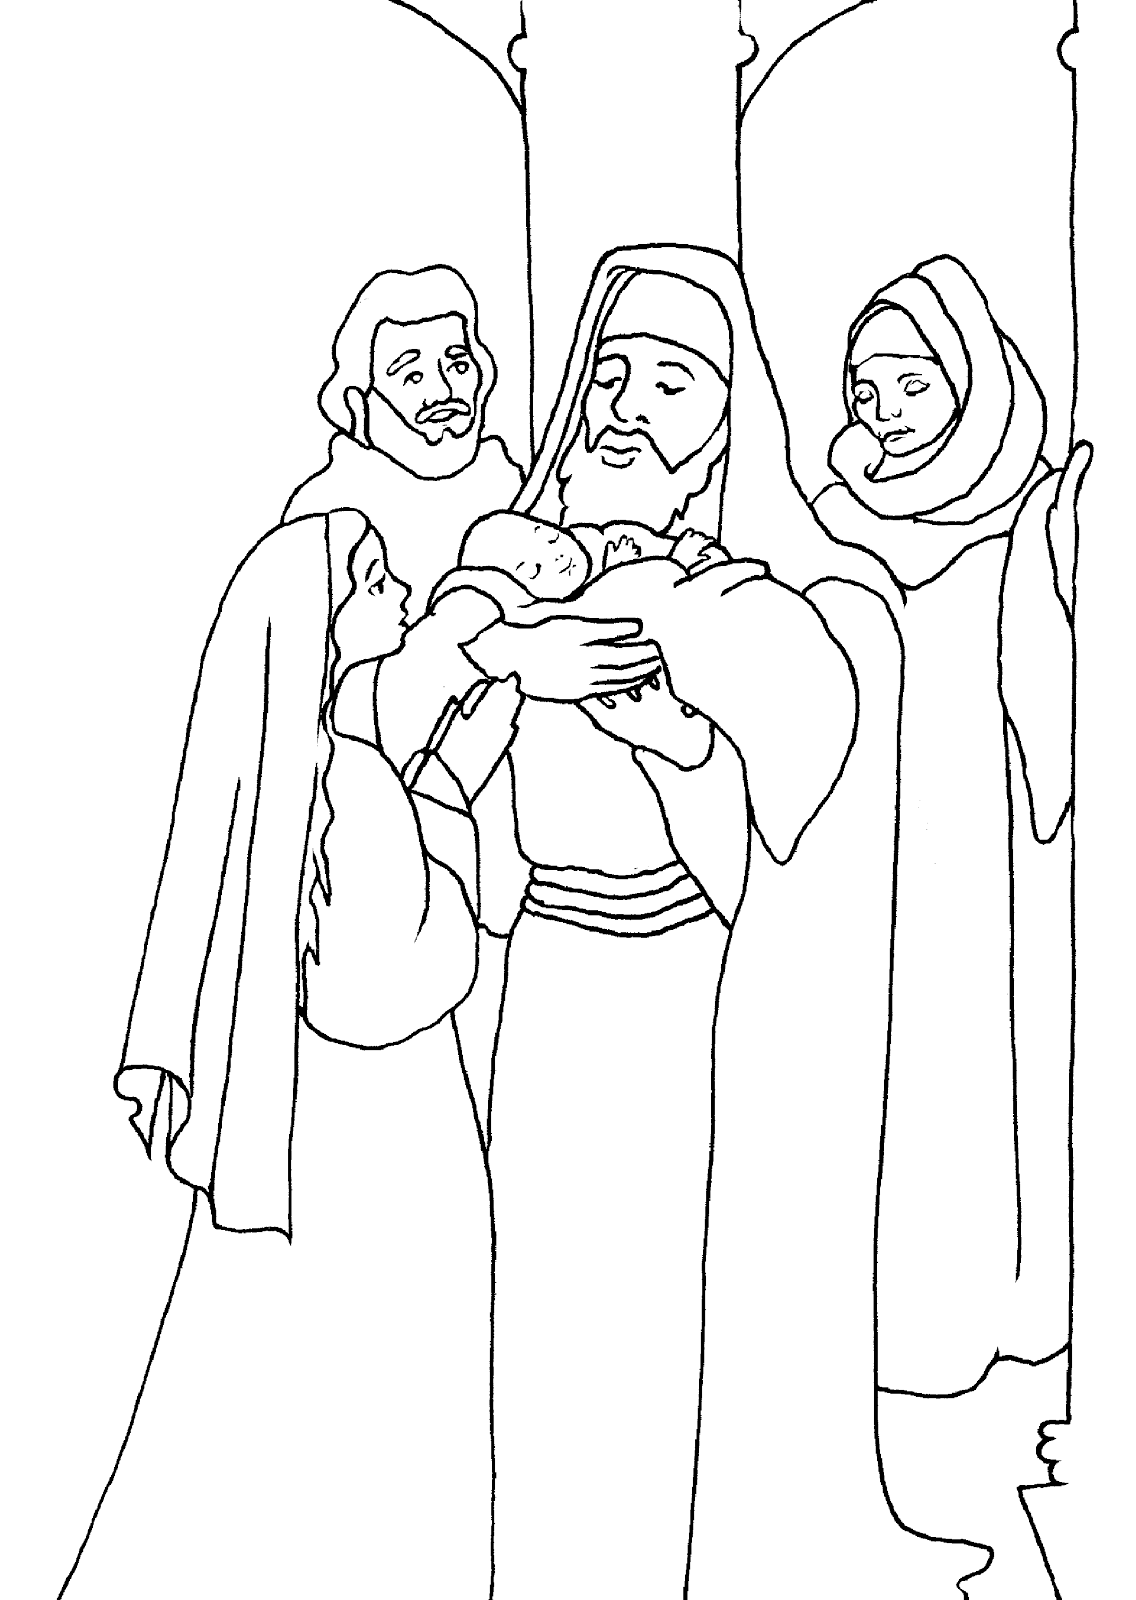 simeon and anna coloring pages - photo#2